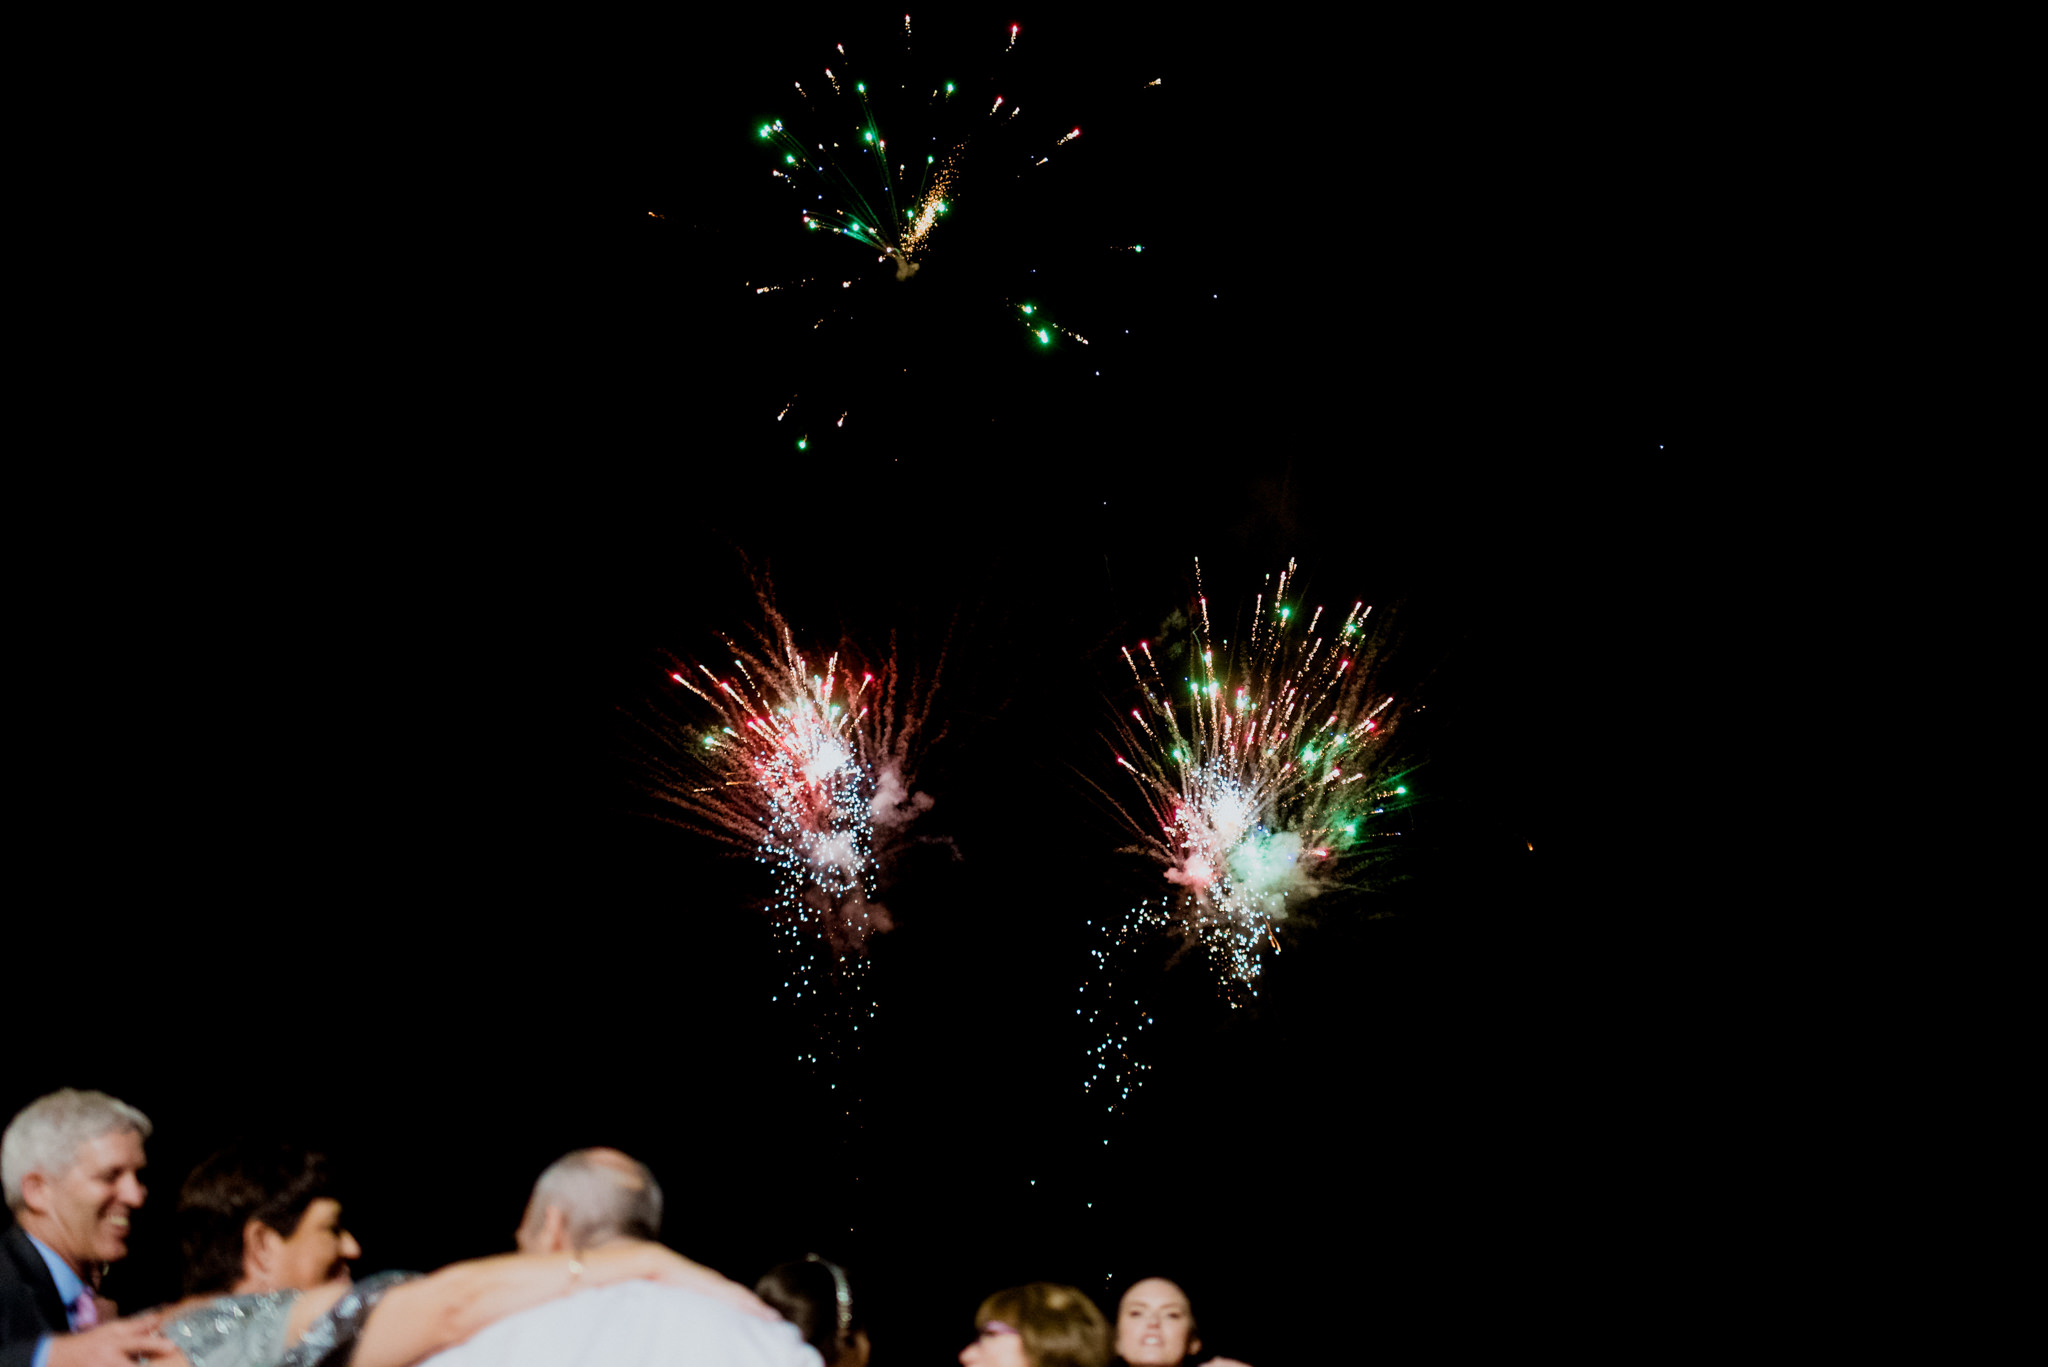 A small fireworks display with some people watching